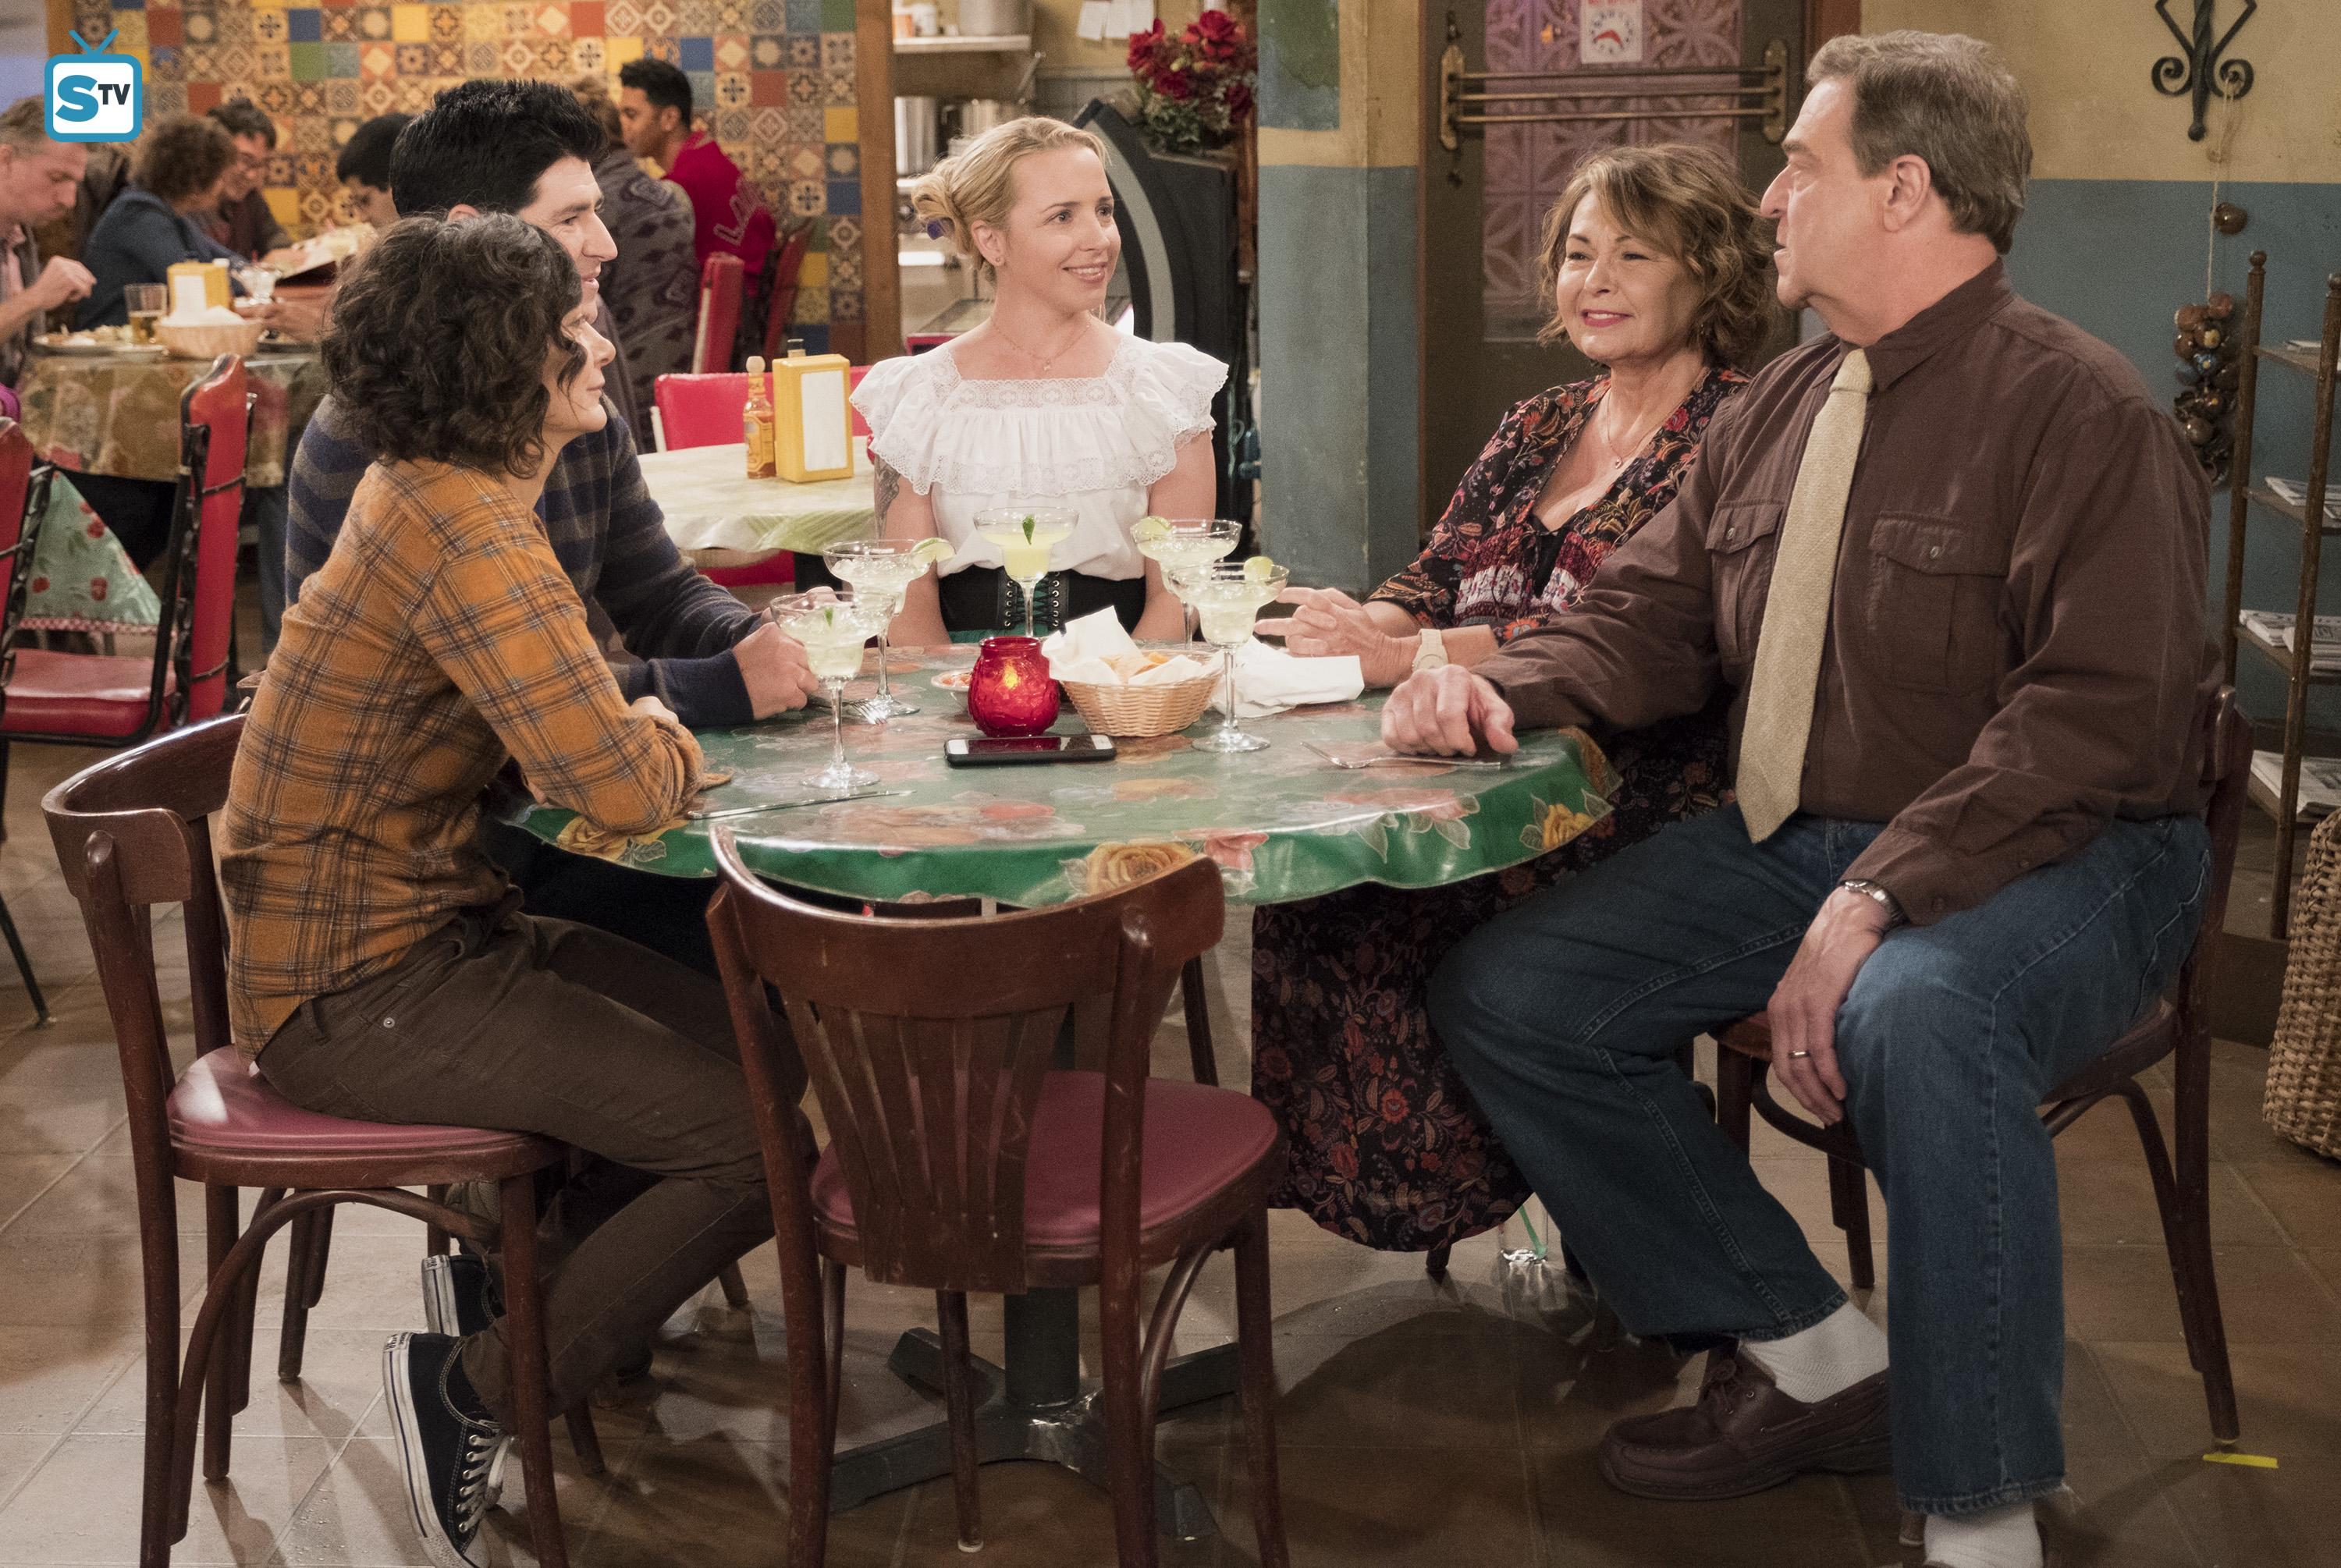 10x08 - Netflix and Pill - Darlene, DJ, Becky, Roseanne and Dan